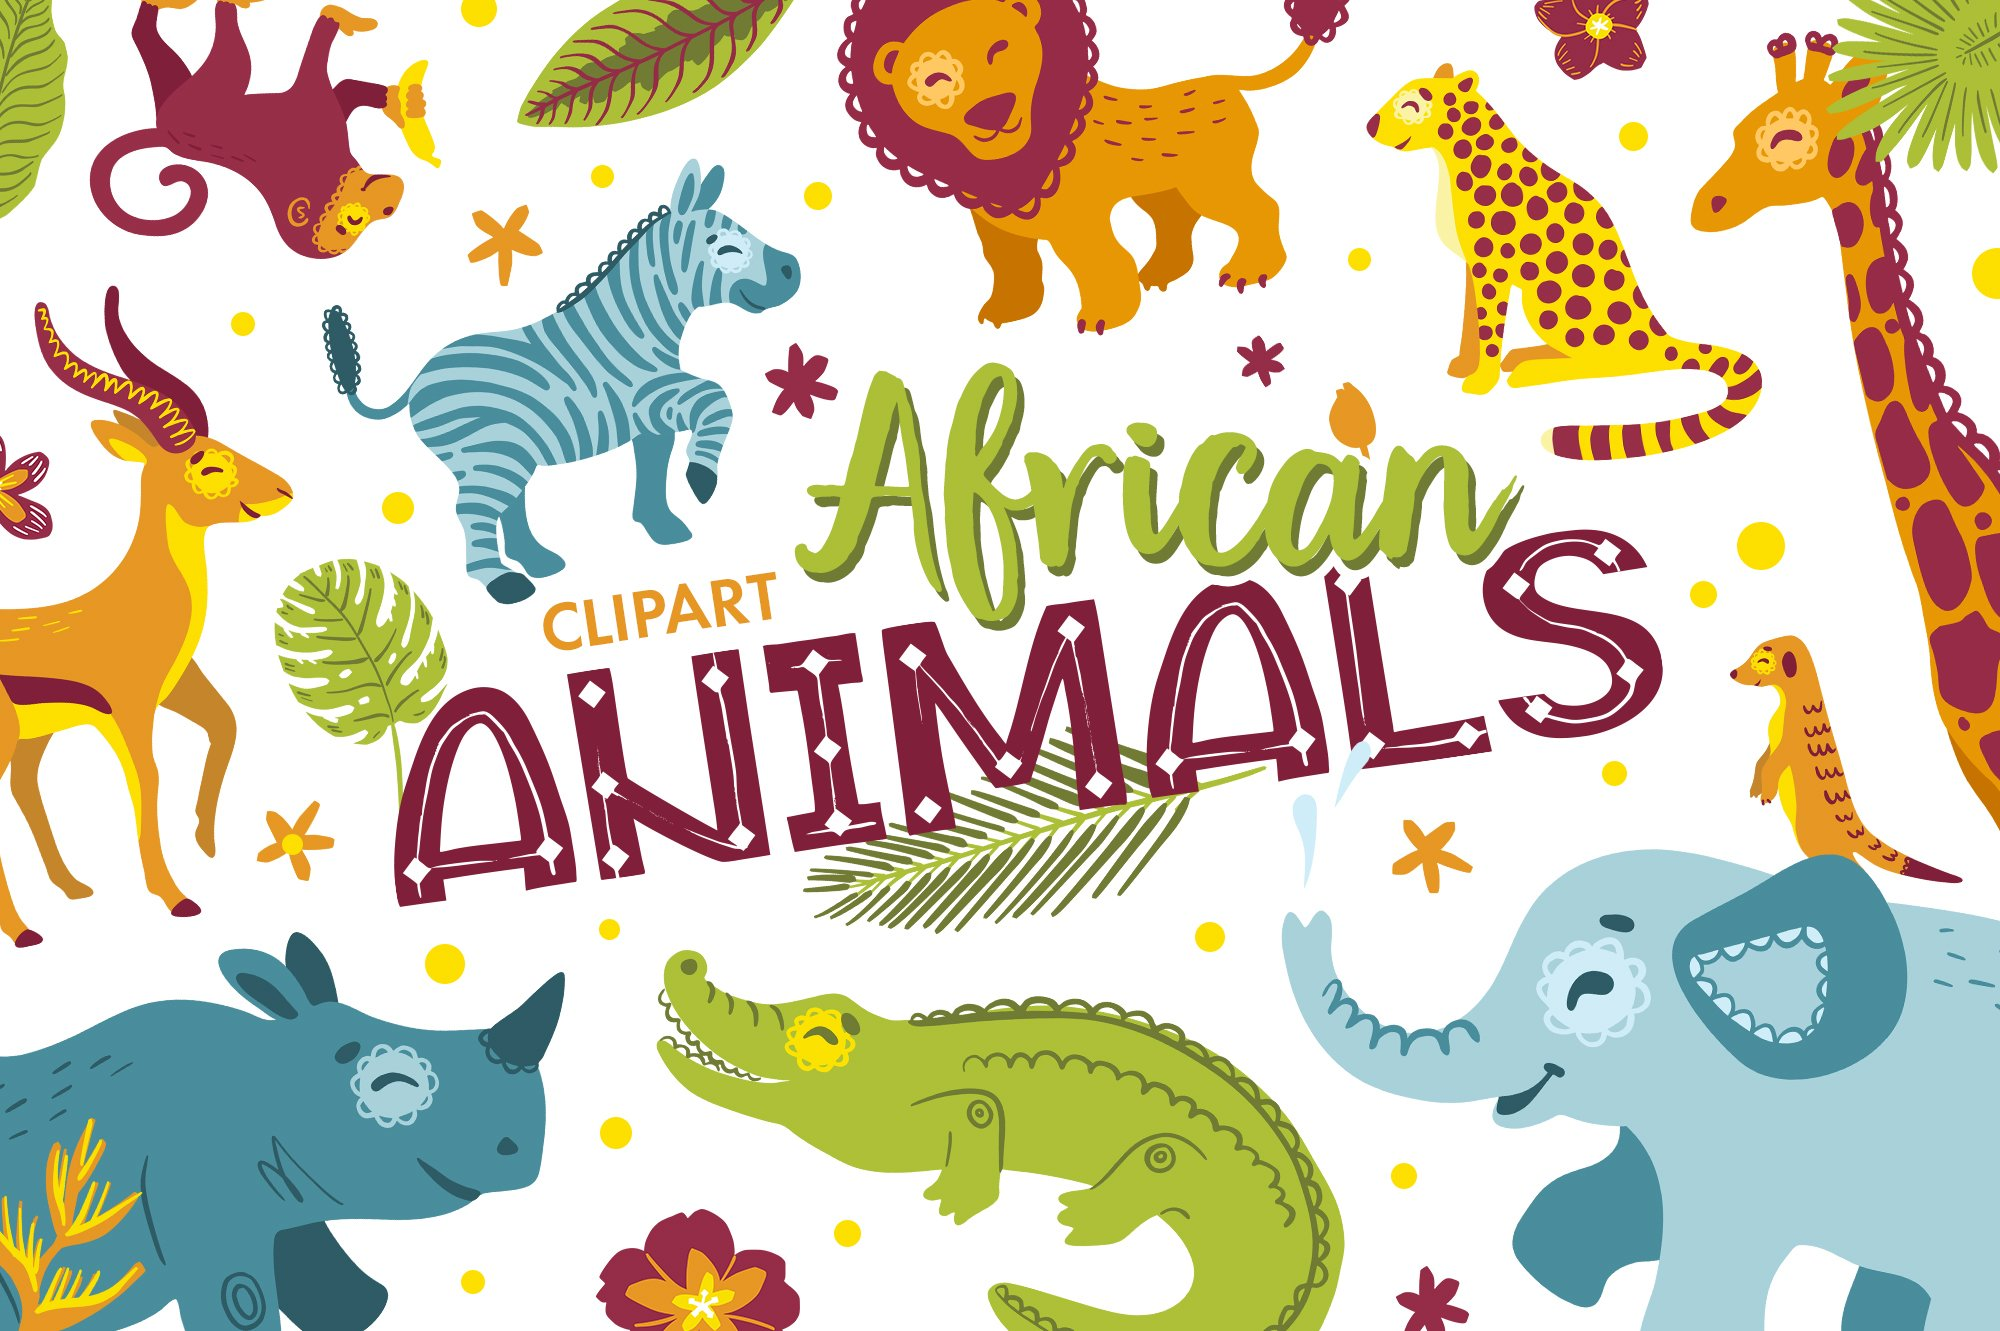 African animals clipart and alphabet.